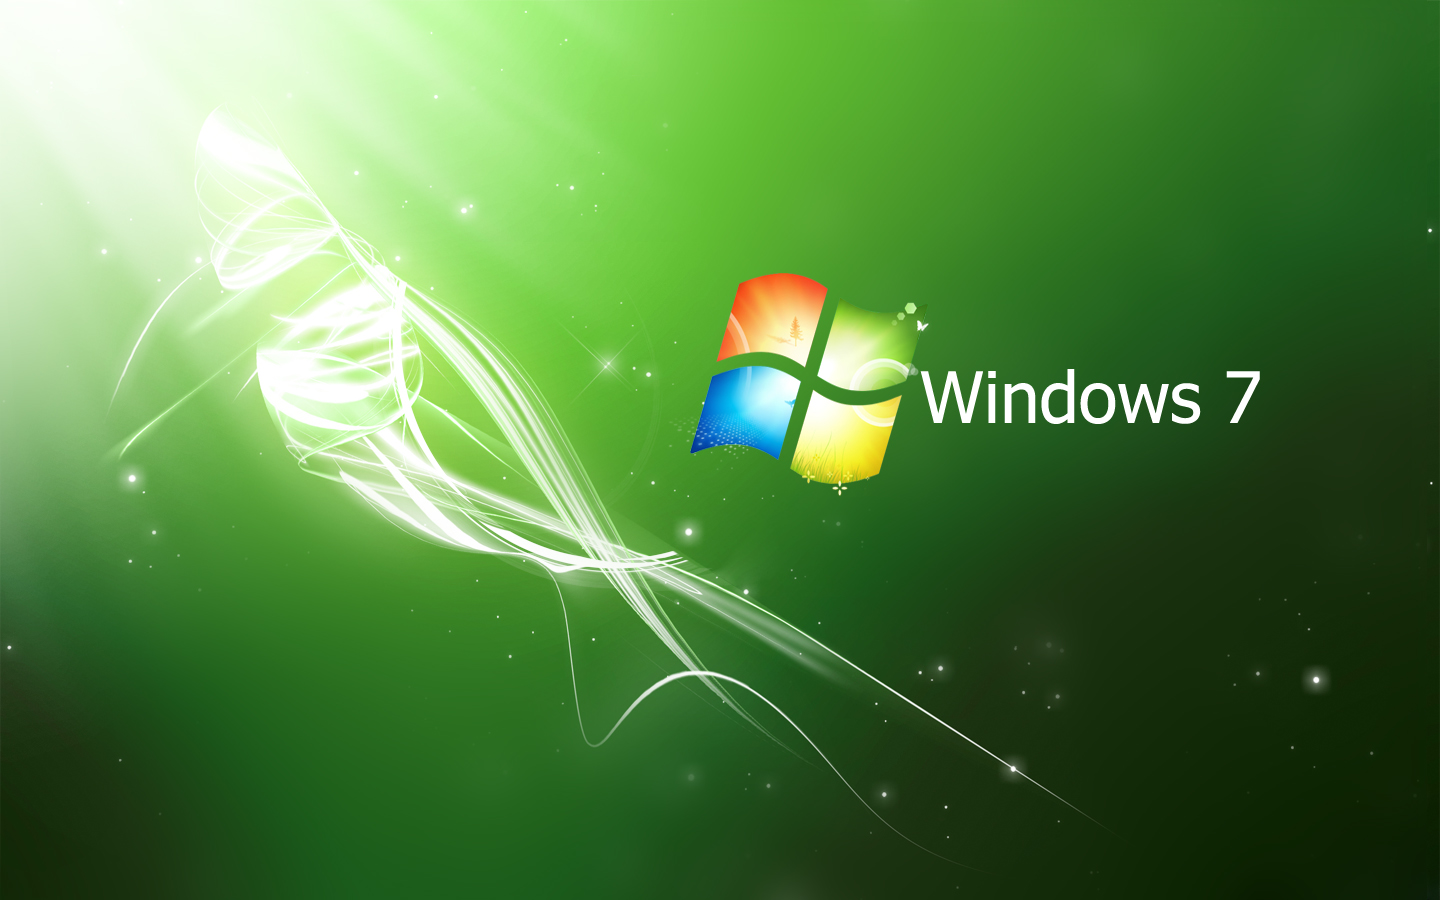 Wallpapers Box Windows 7 Crystal Pack Blue   Green   Red HD 1440x900